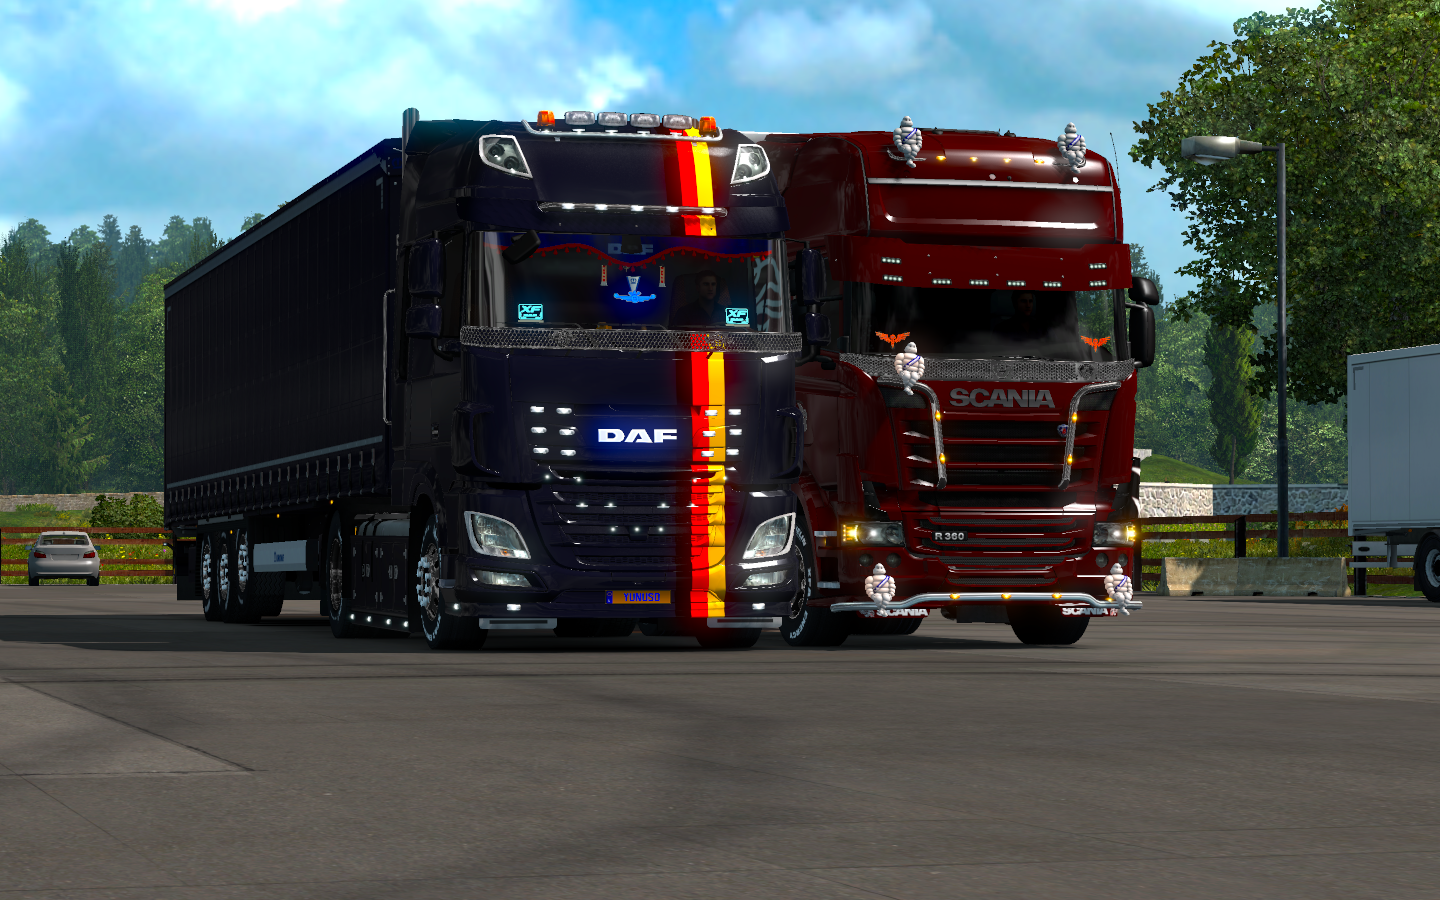 ets2_20190527_155228_00.png